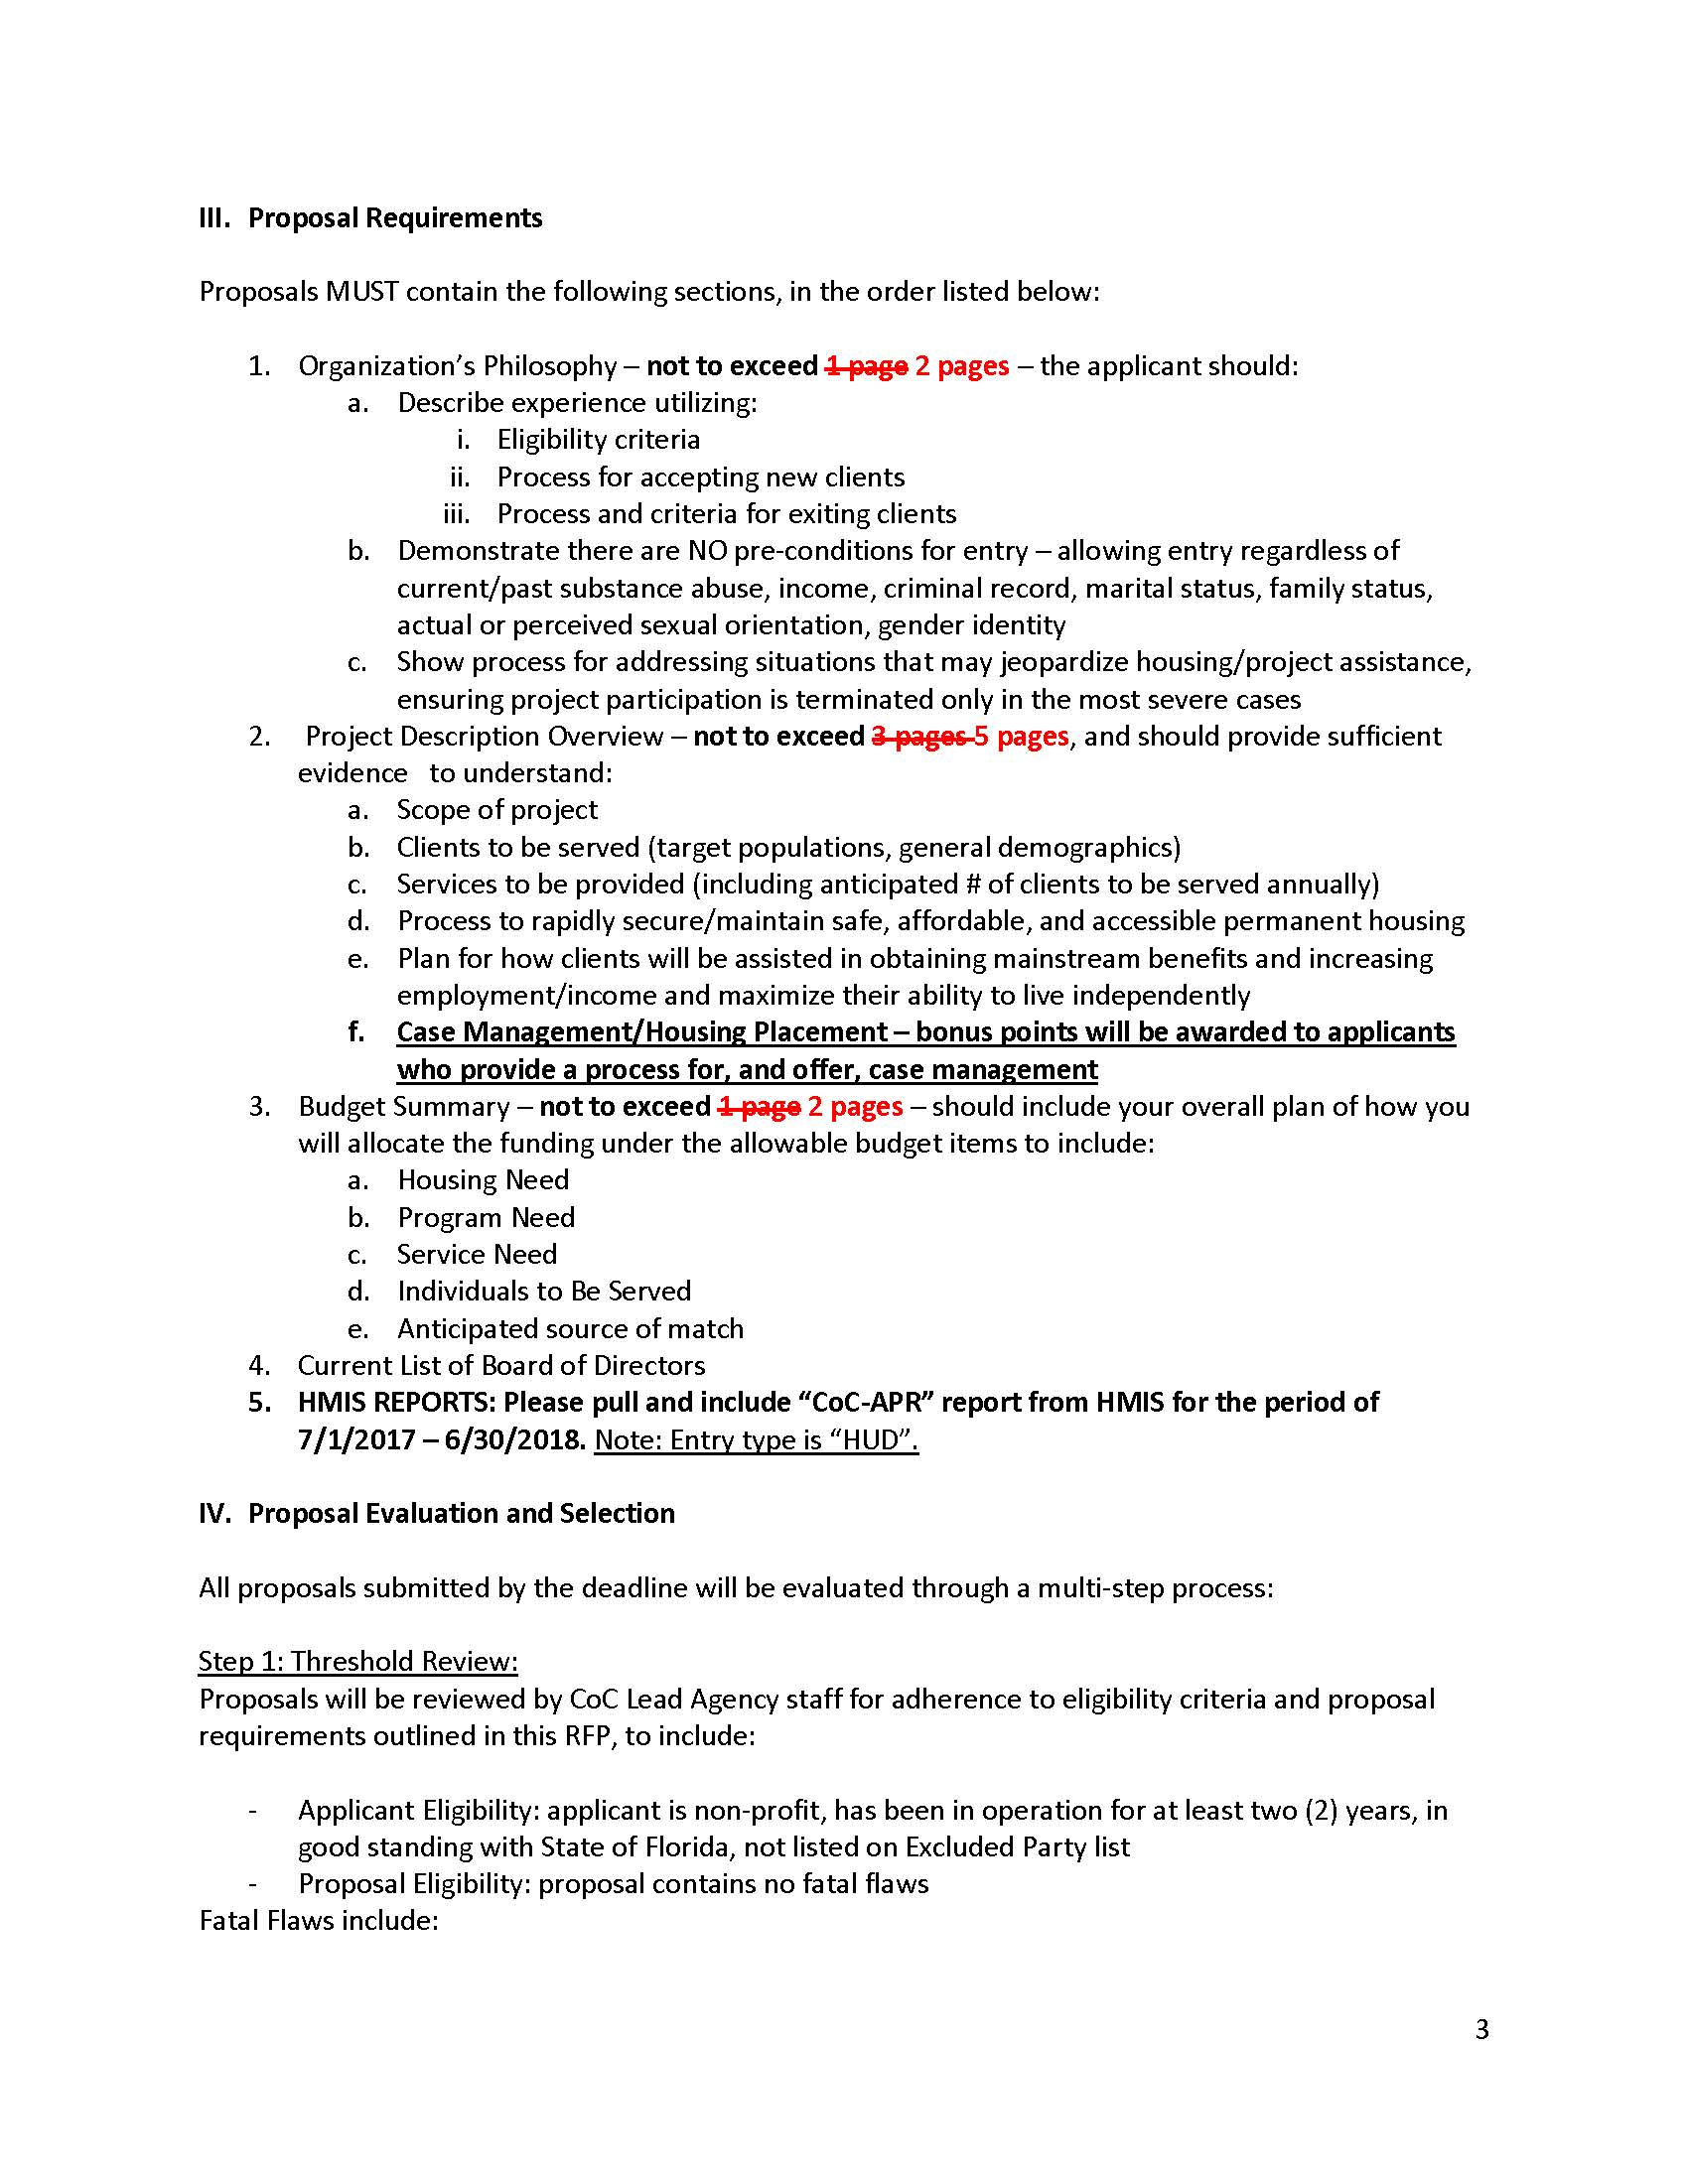 2019 RFP - Final (updated)_Page_03.jpg